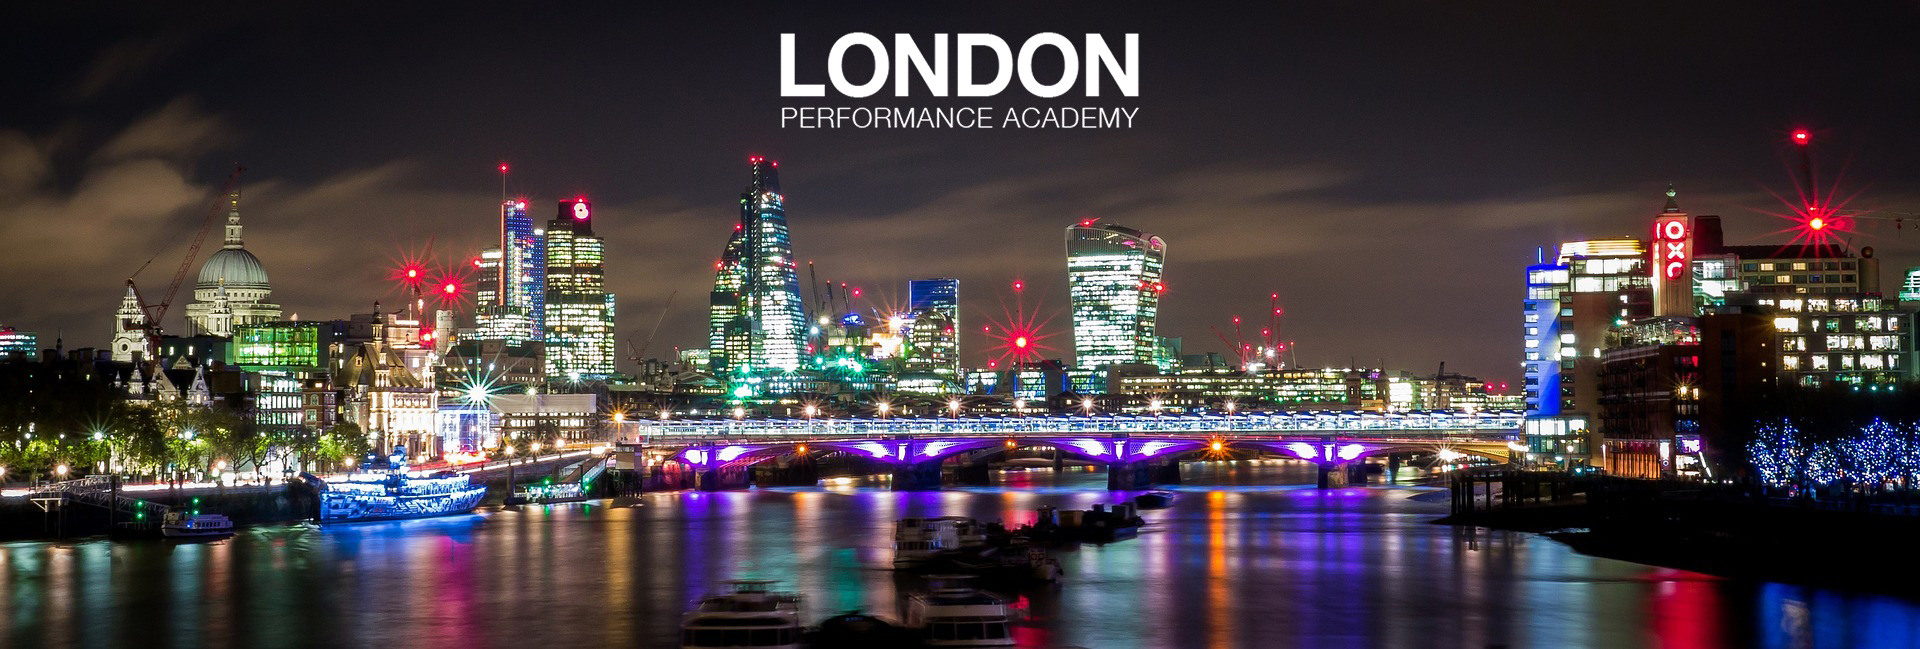 London Performance Academy